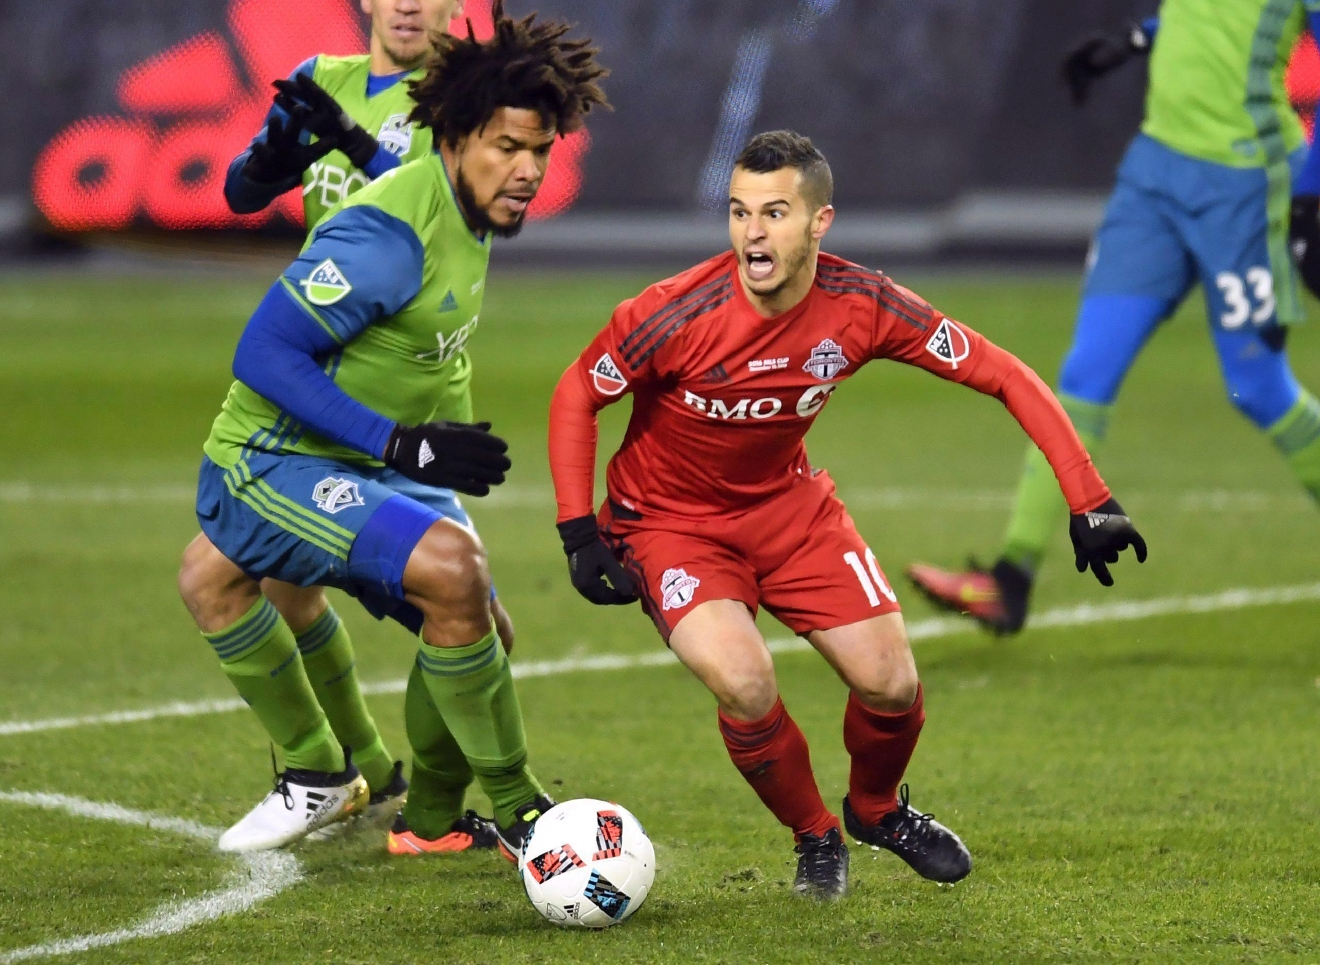 Toronto FC forward Sebastian Giovinco (10) looks to pass as Seattle Sounders defender Roman Torres (29) defends during first-half MLS Cup final soccer action in Toronto, Saturday, Dec. 10, 2016. (Frank Gunn/The Canadian Press via AP)